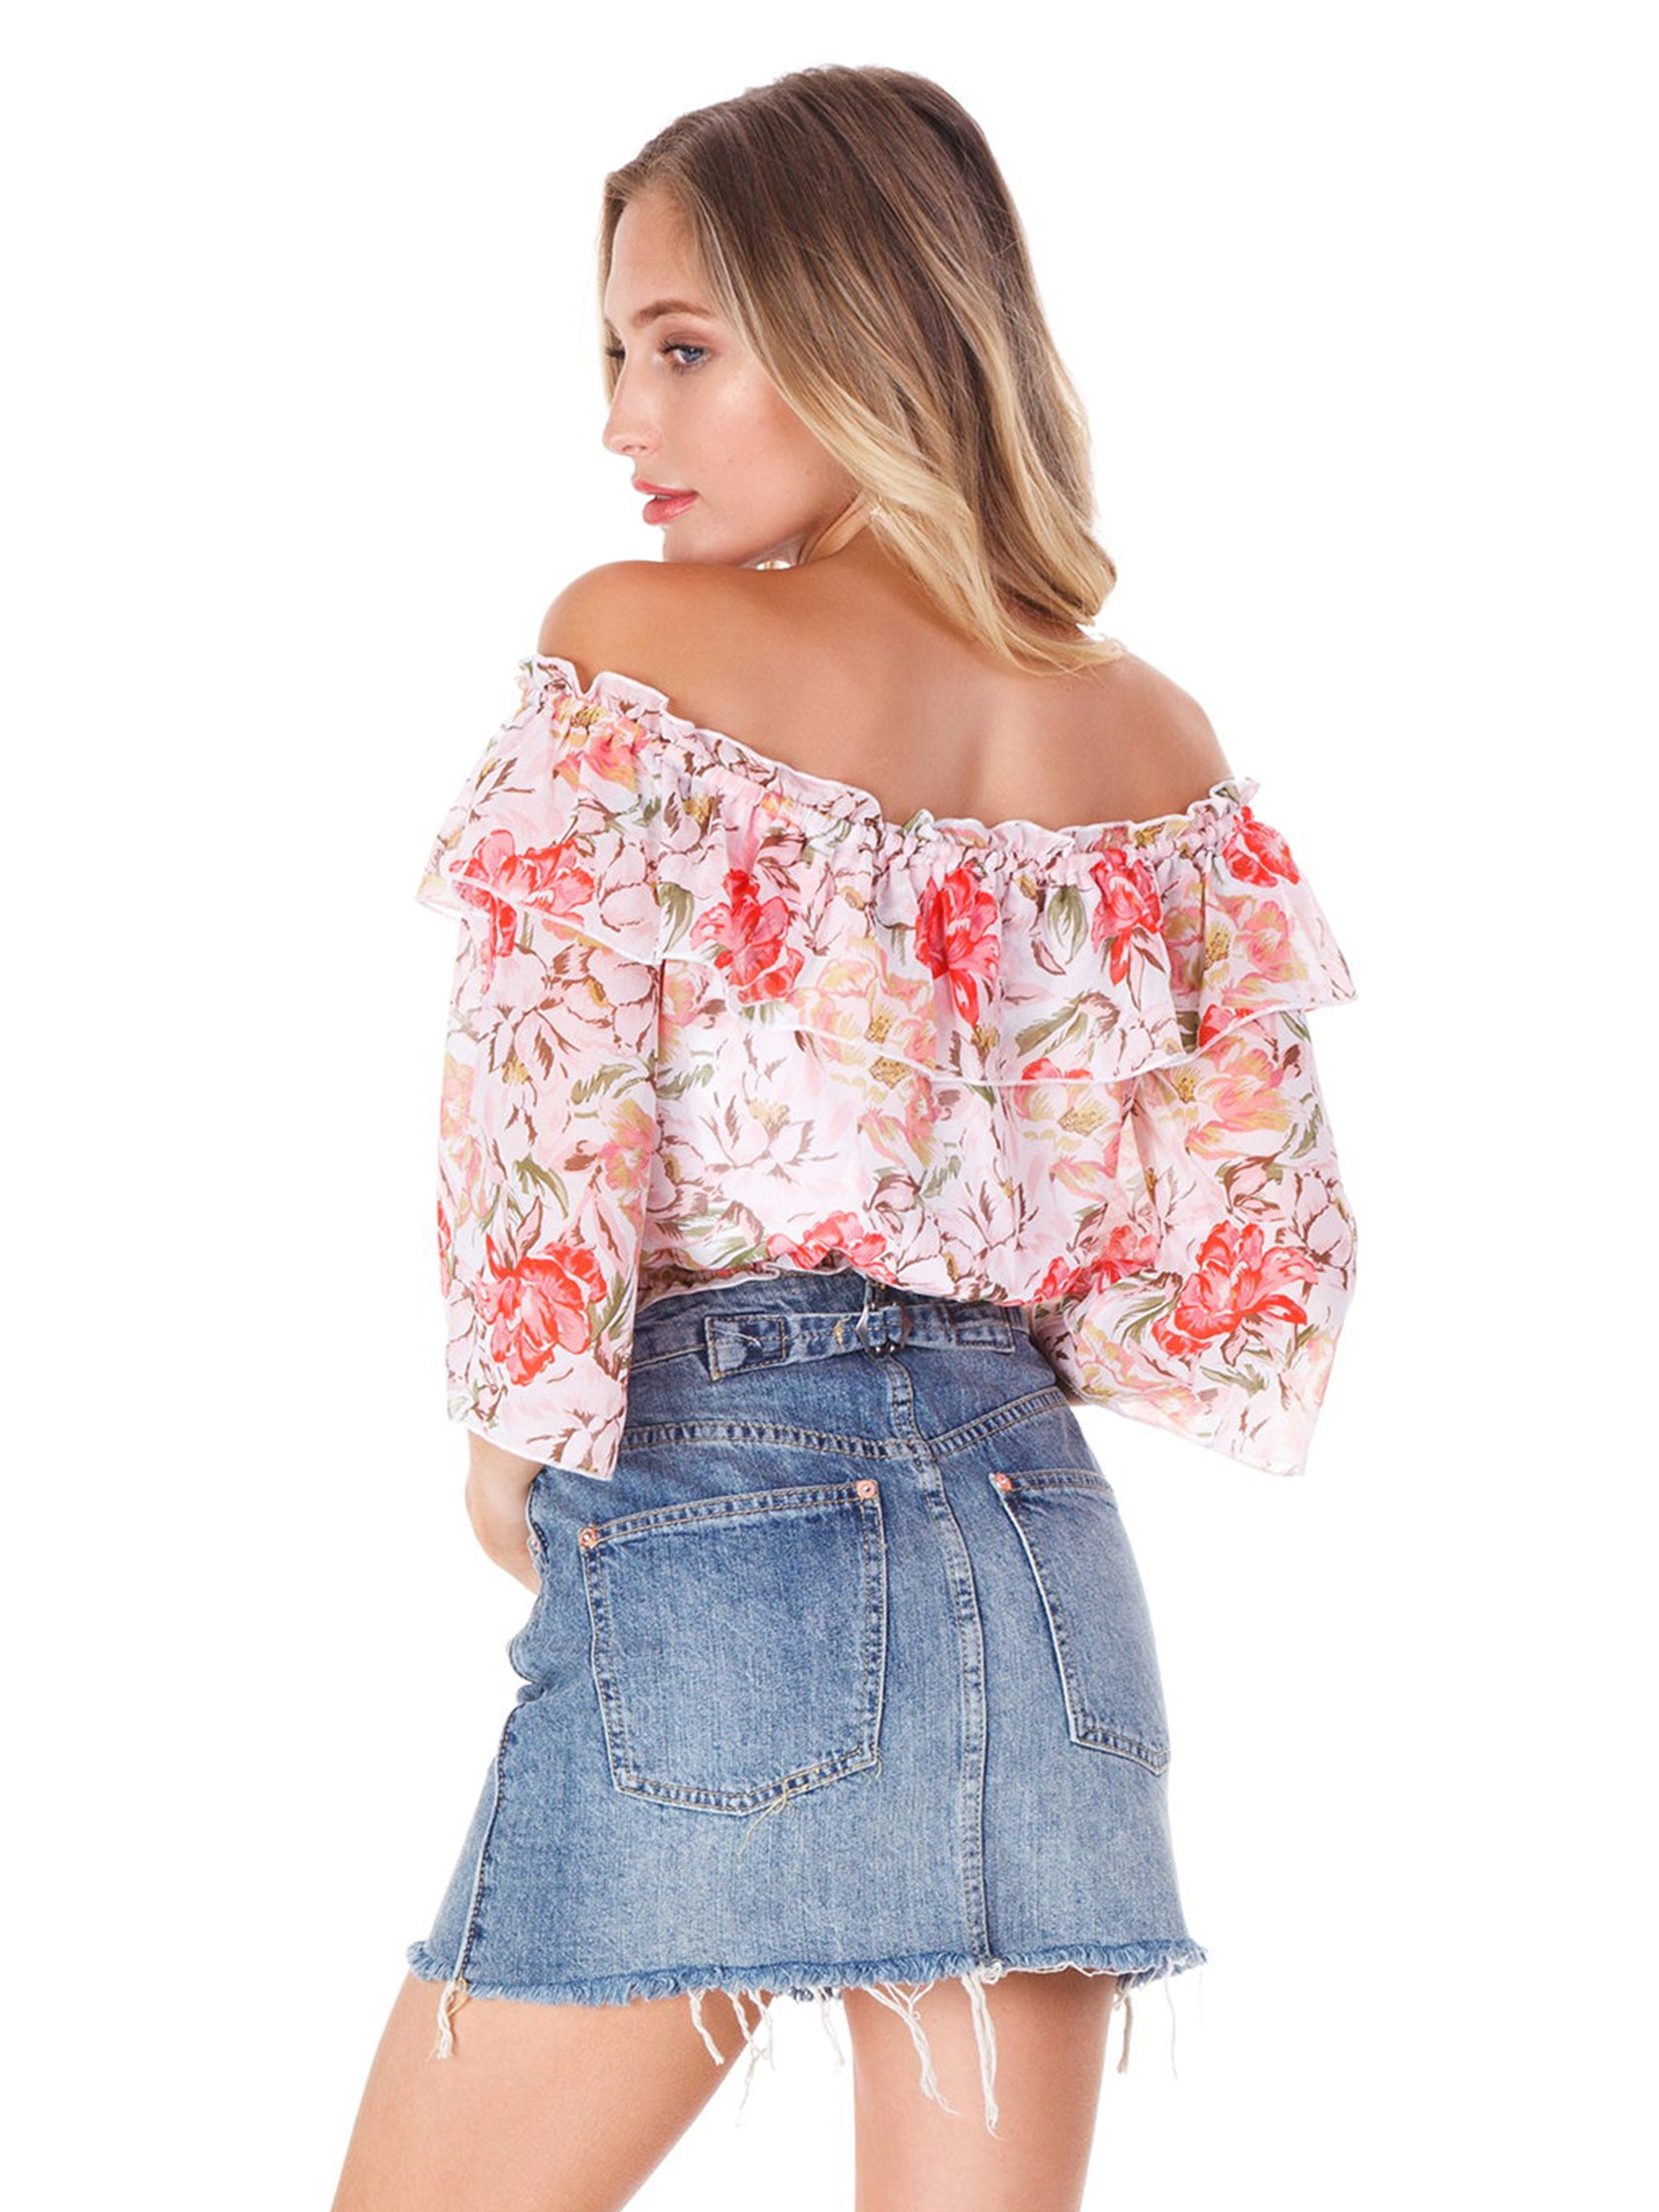 Women outfit in a top rental from WAYF called Cosenza Off Shoulder Crop Top